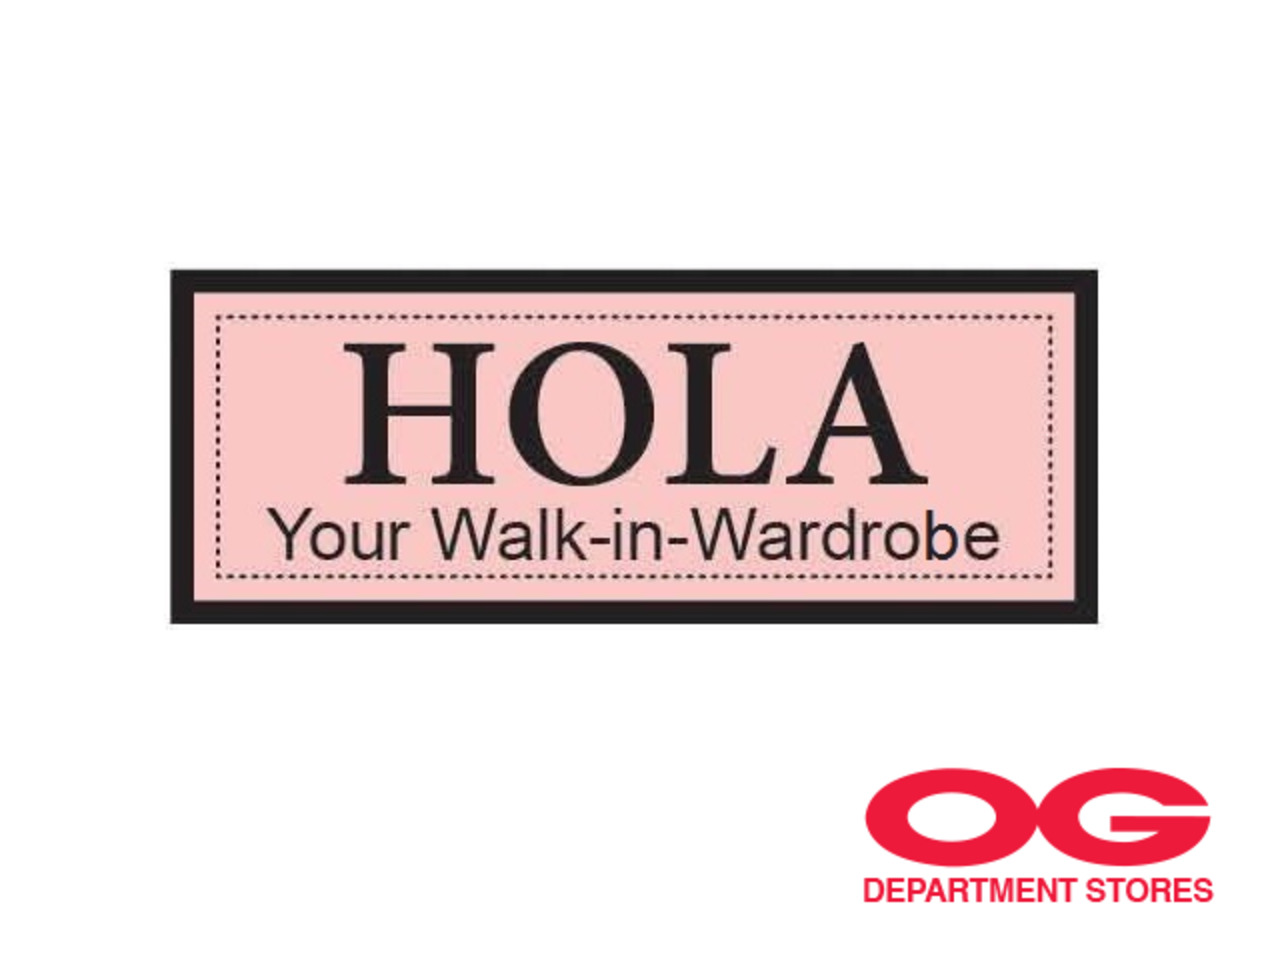 HOLA All Regular-Priced Women's Apparel @ 30% off